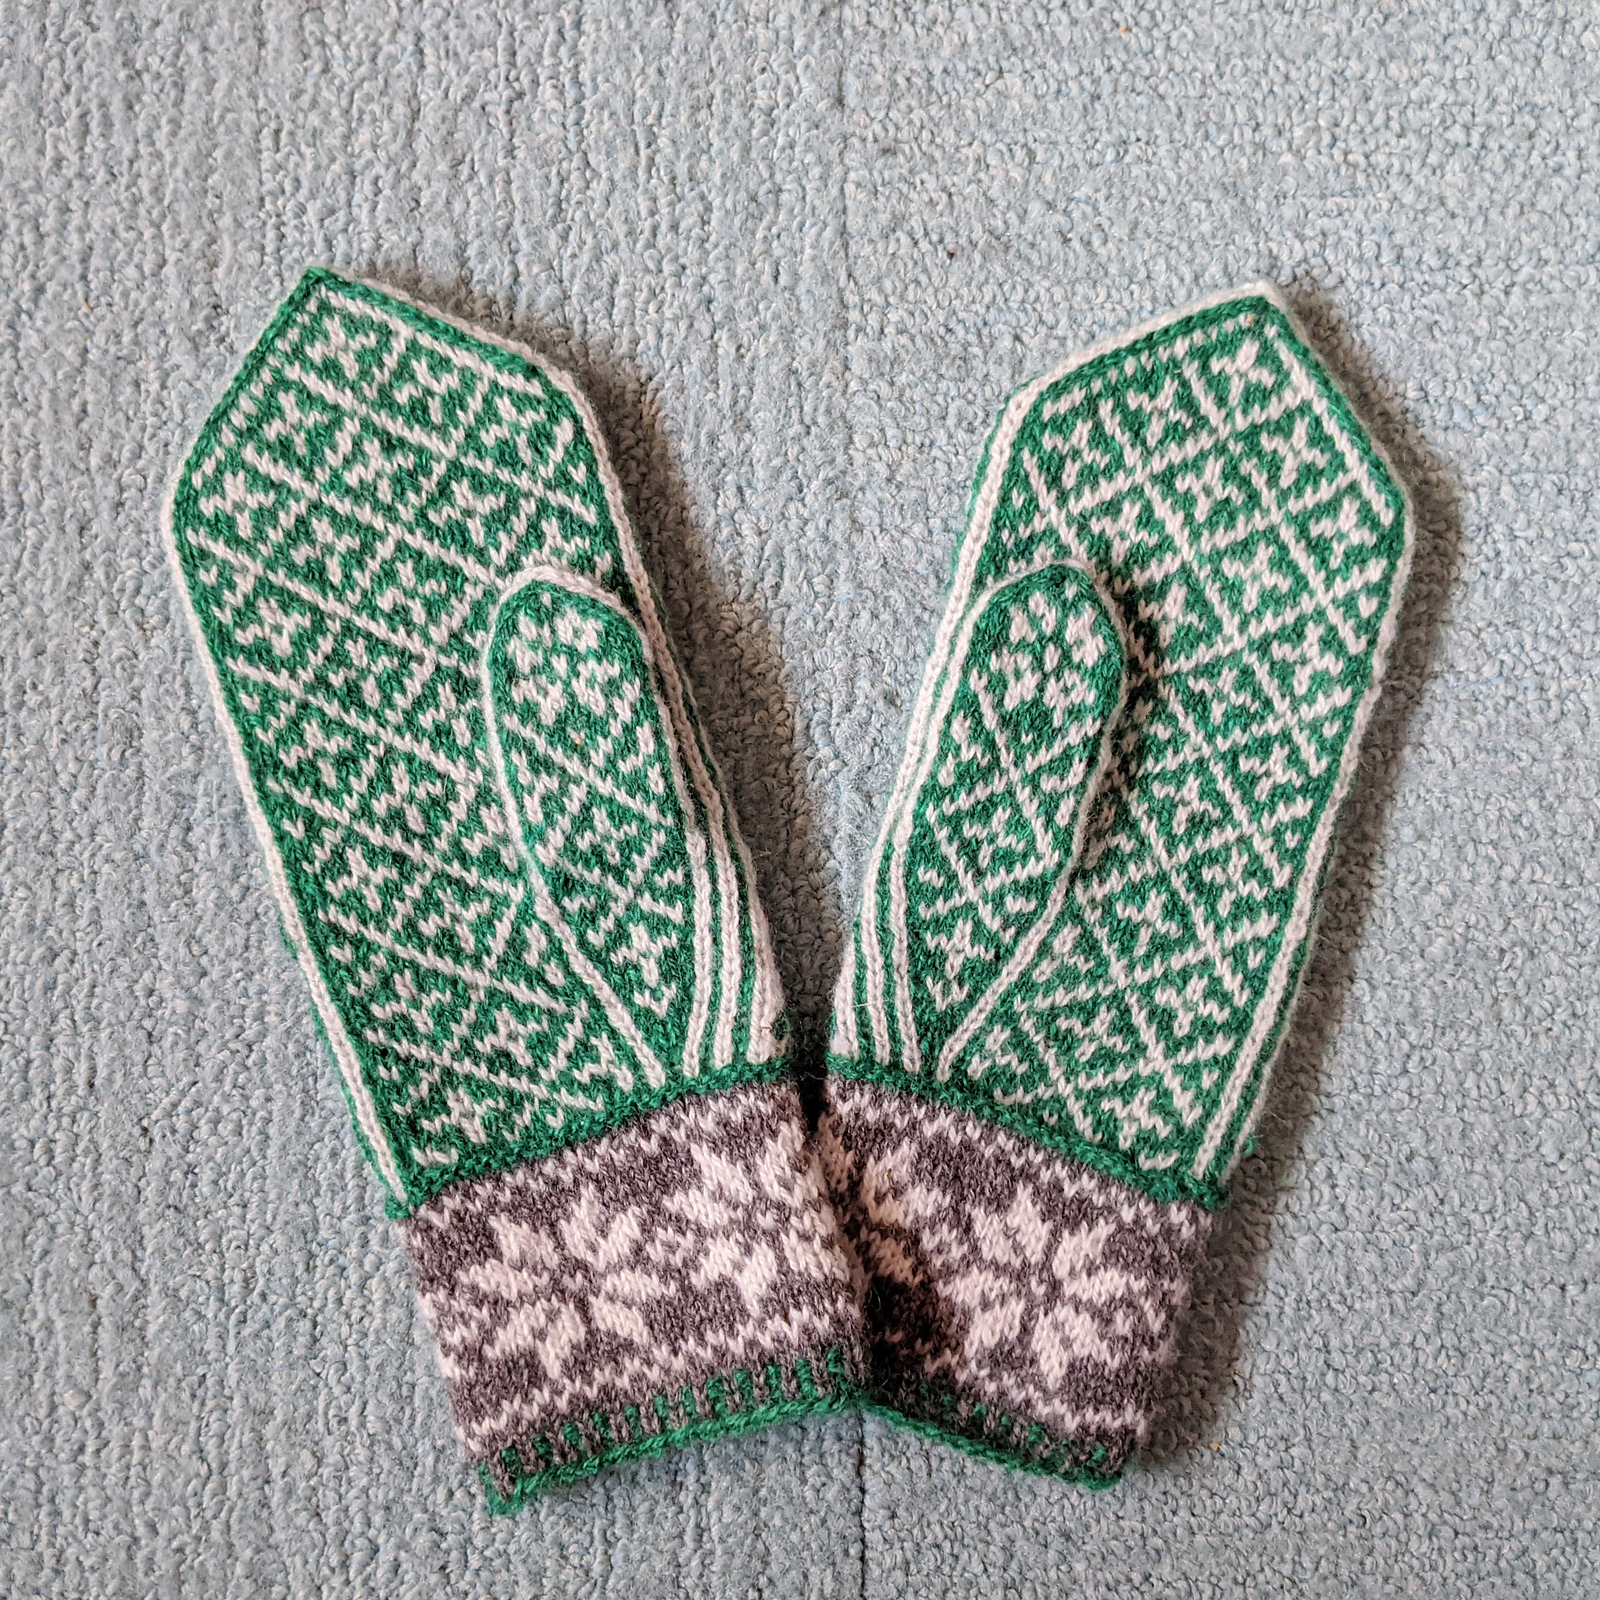 A pair of mittens in green, white, and grey lays on a carpet, palm side up. A geometric pattern of diamonds covers the palm and thumb.